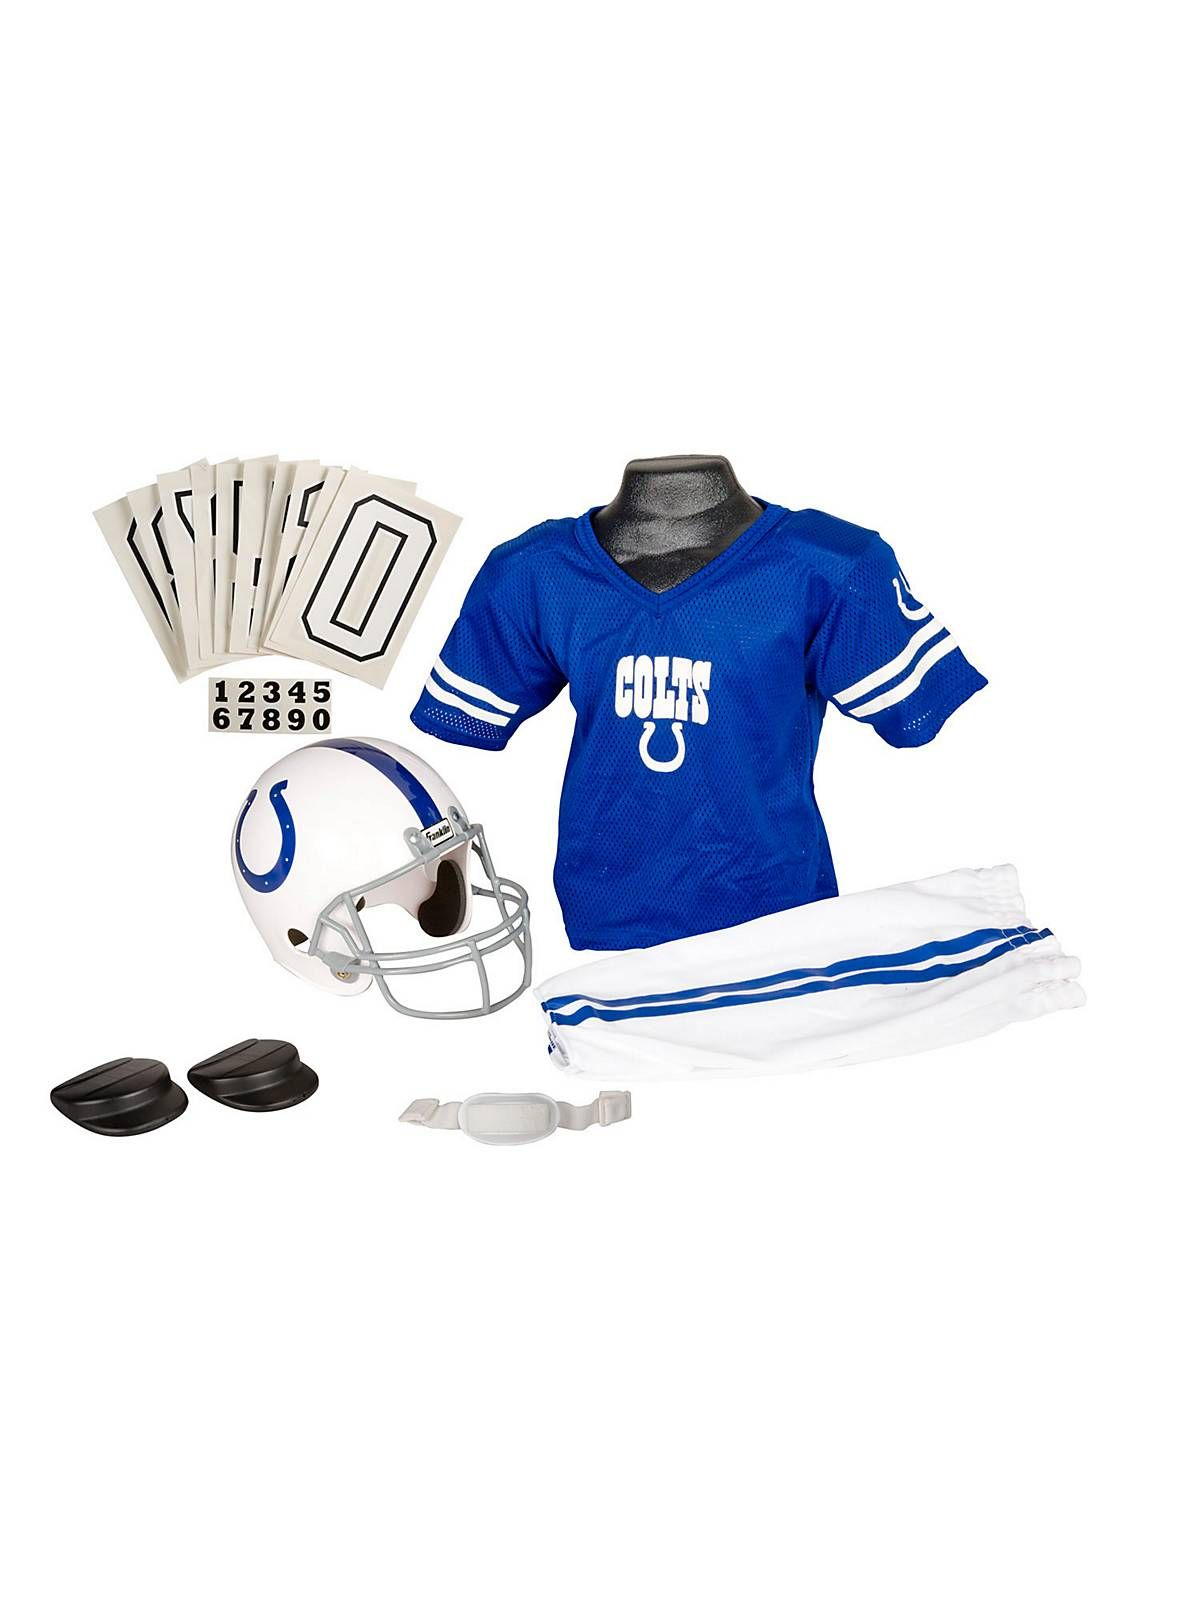 Childs NFL Colts Helmet and Uniform Set! See more football #costume accessories at CostumeSuperCenter.com!